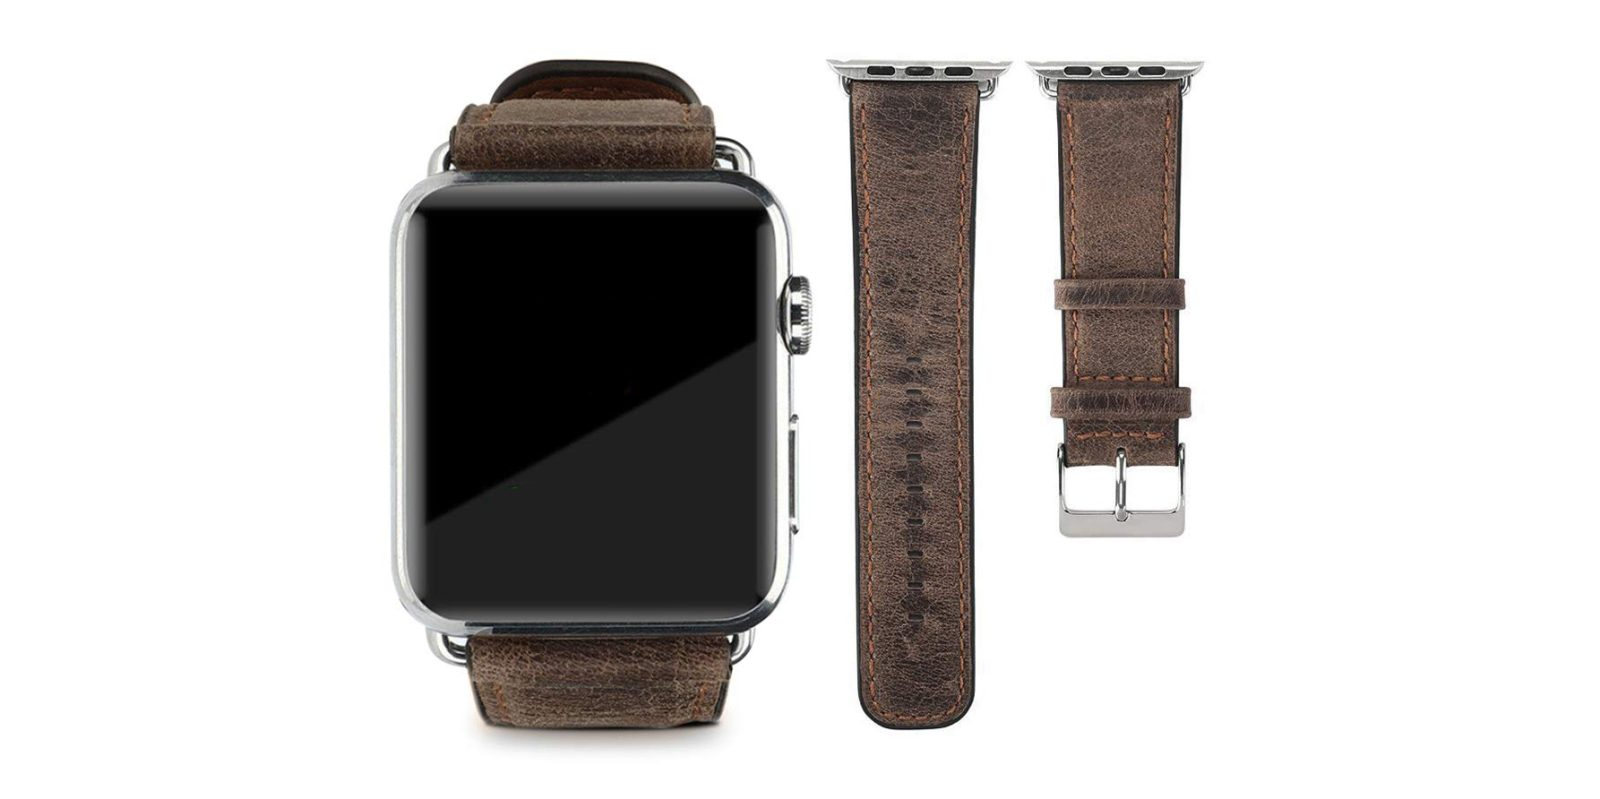 Strap on a leather Apple Watch band for just $5 via Amazon